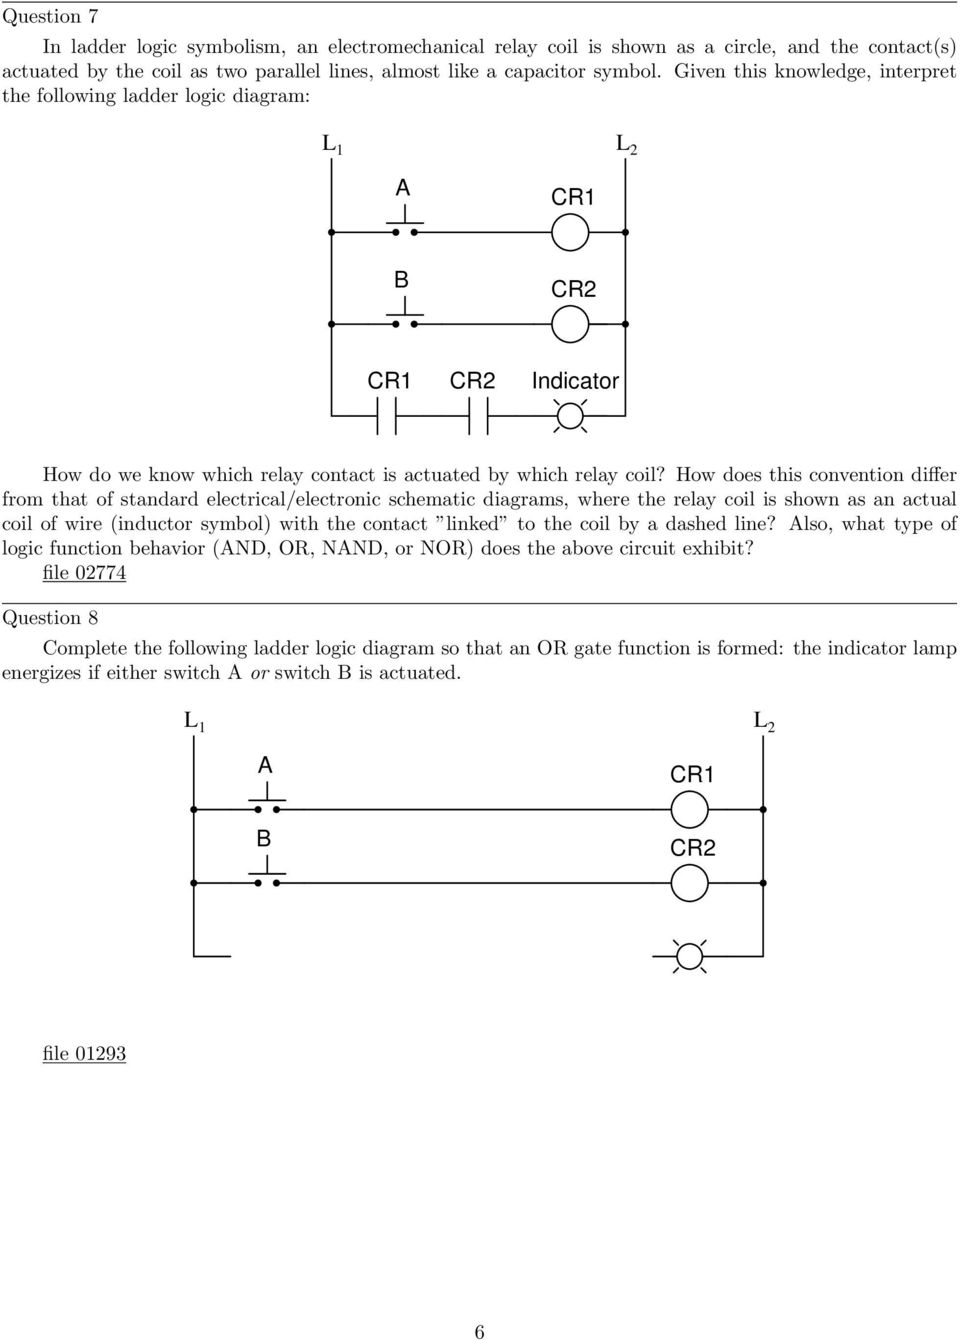 Electromechanical Relay Logic Pdf Ladder Diagram Images How Does This Convention Differ From That Of Standard Electrical Electronic Schematic Diagrams Where